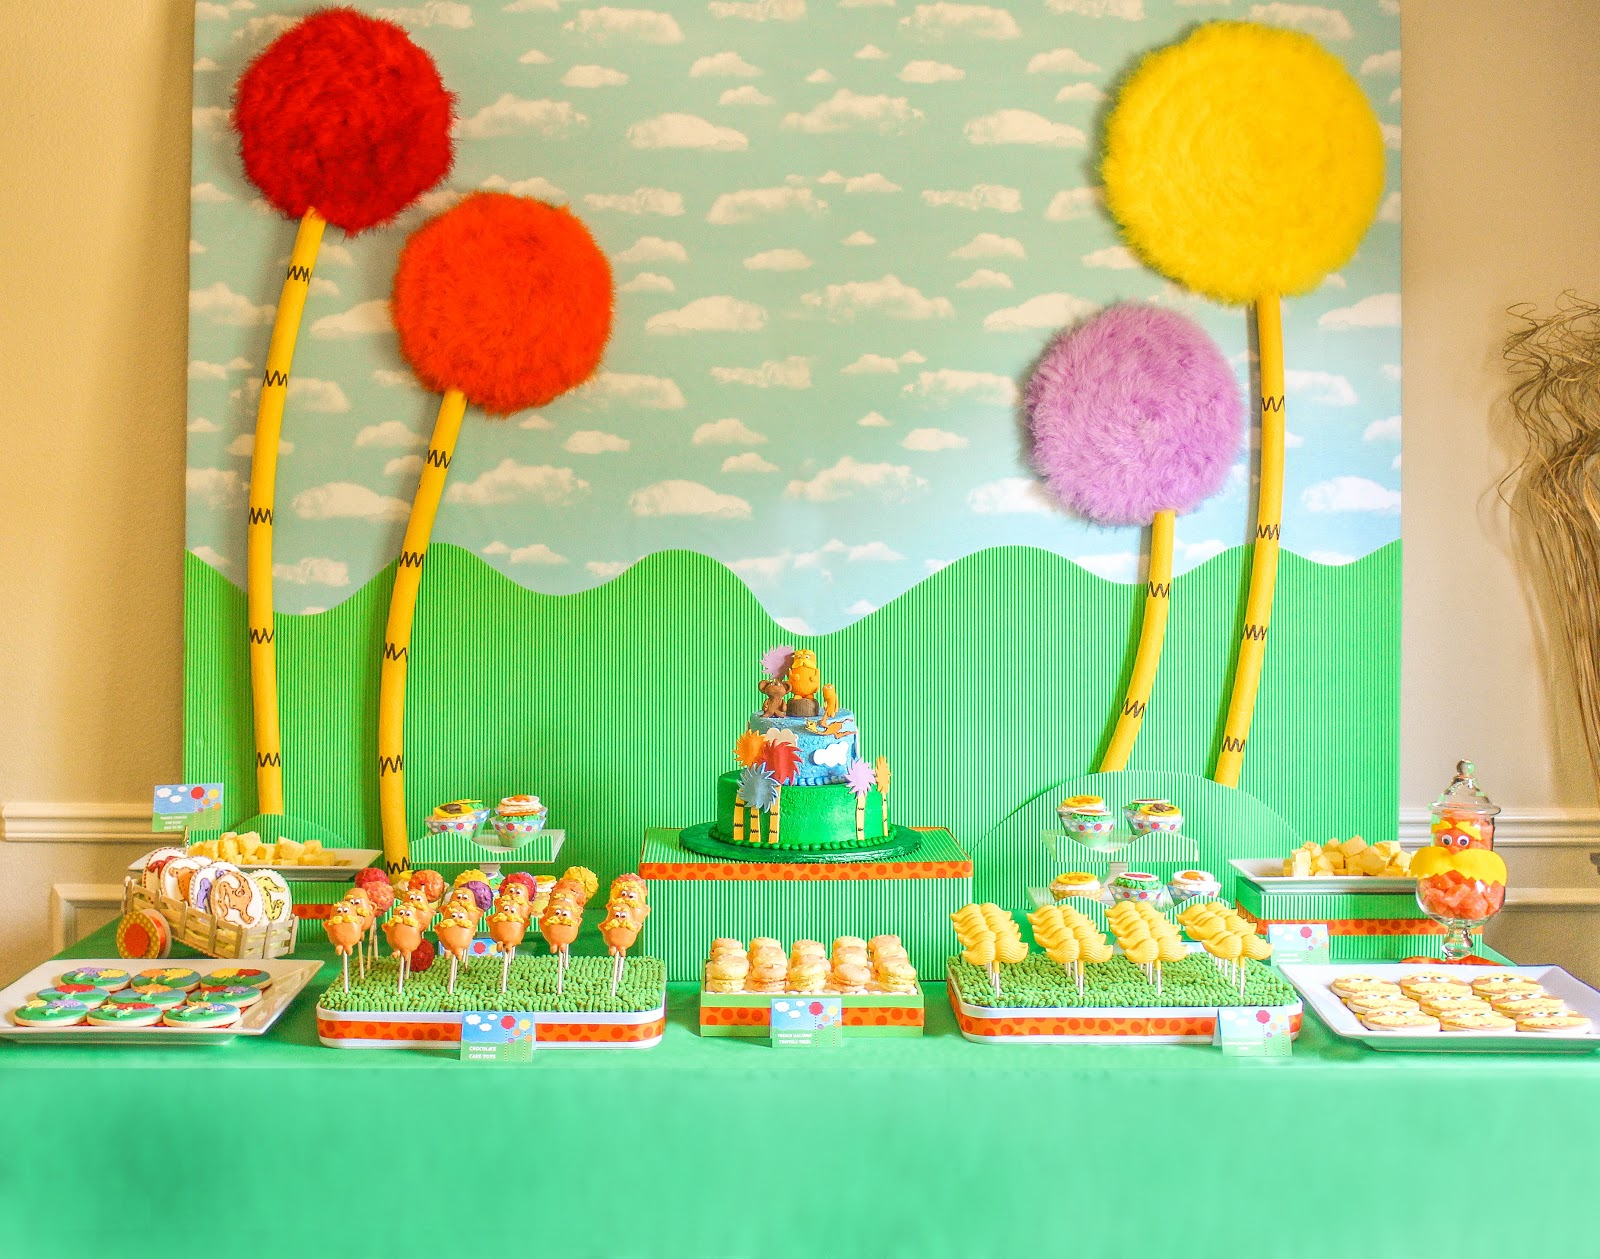 The party wall the lorax party part 2 decorations games the lorax party part 2 decorations games activities amipublicfo Gallery